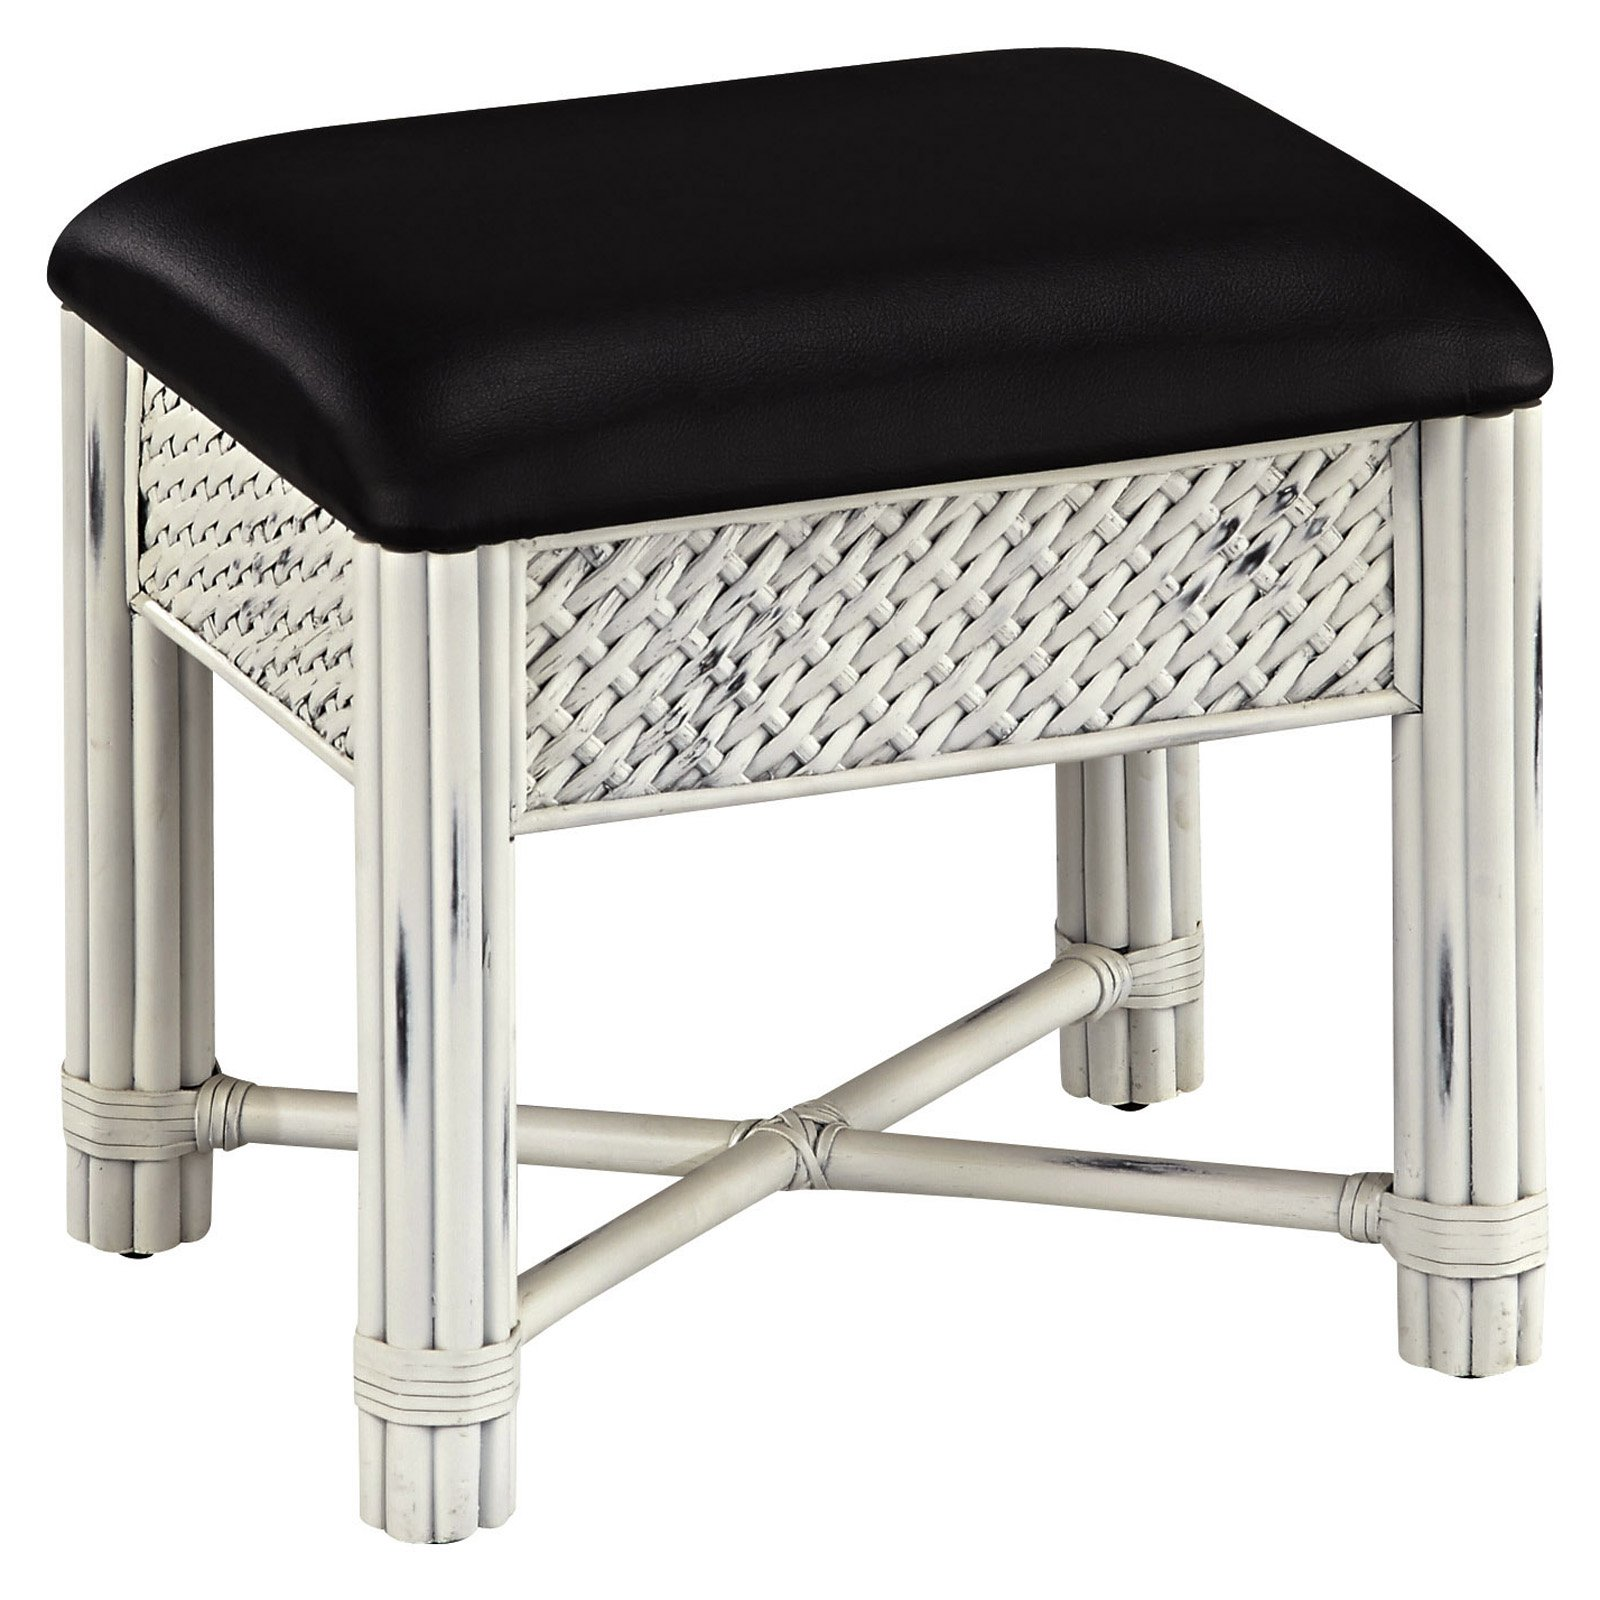 Marco Island Vanity Bench, White Finish by Home Styles